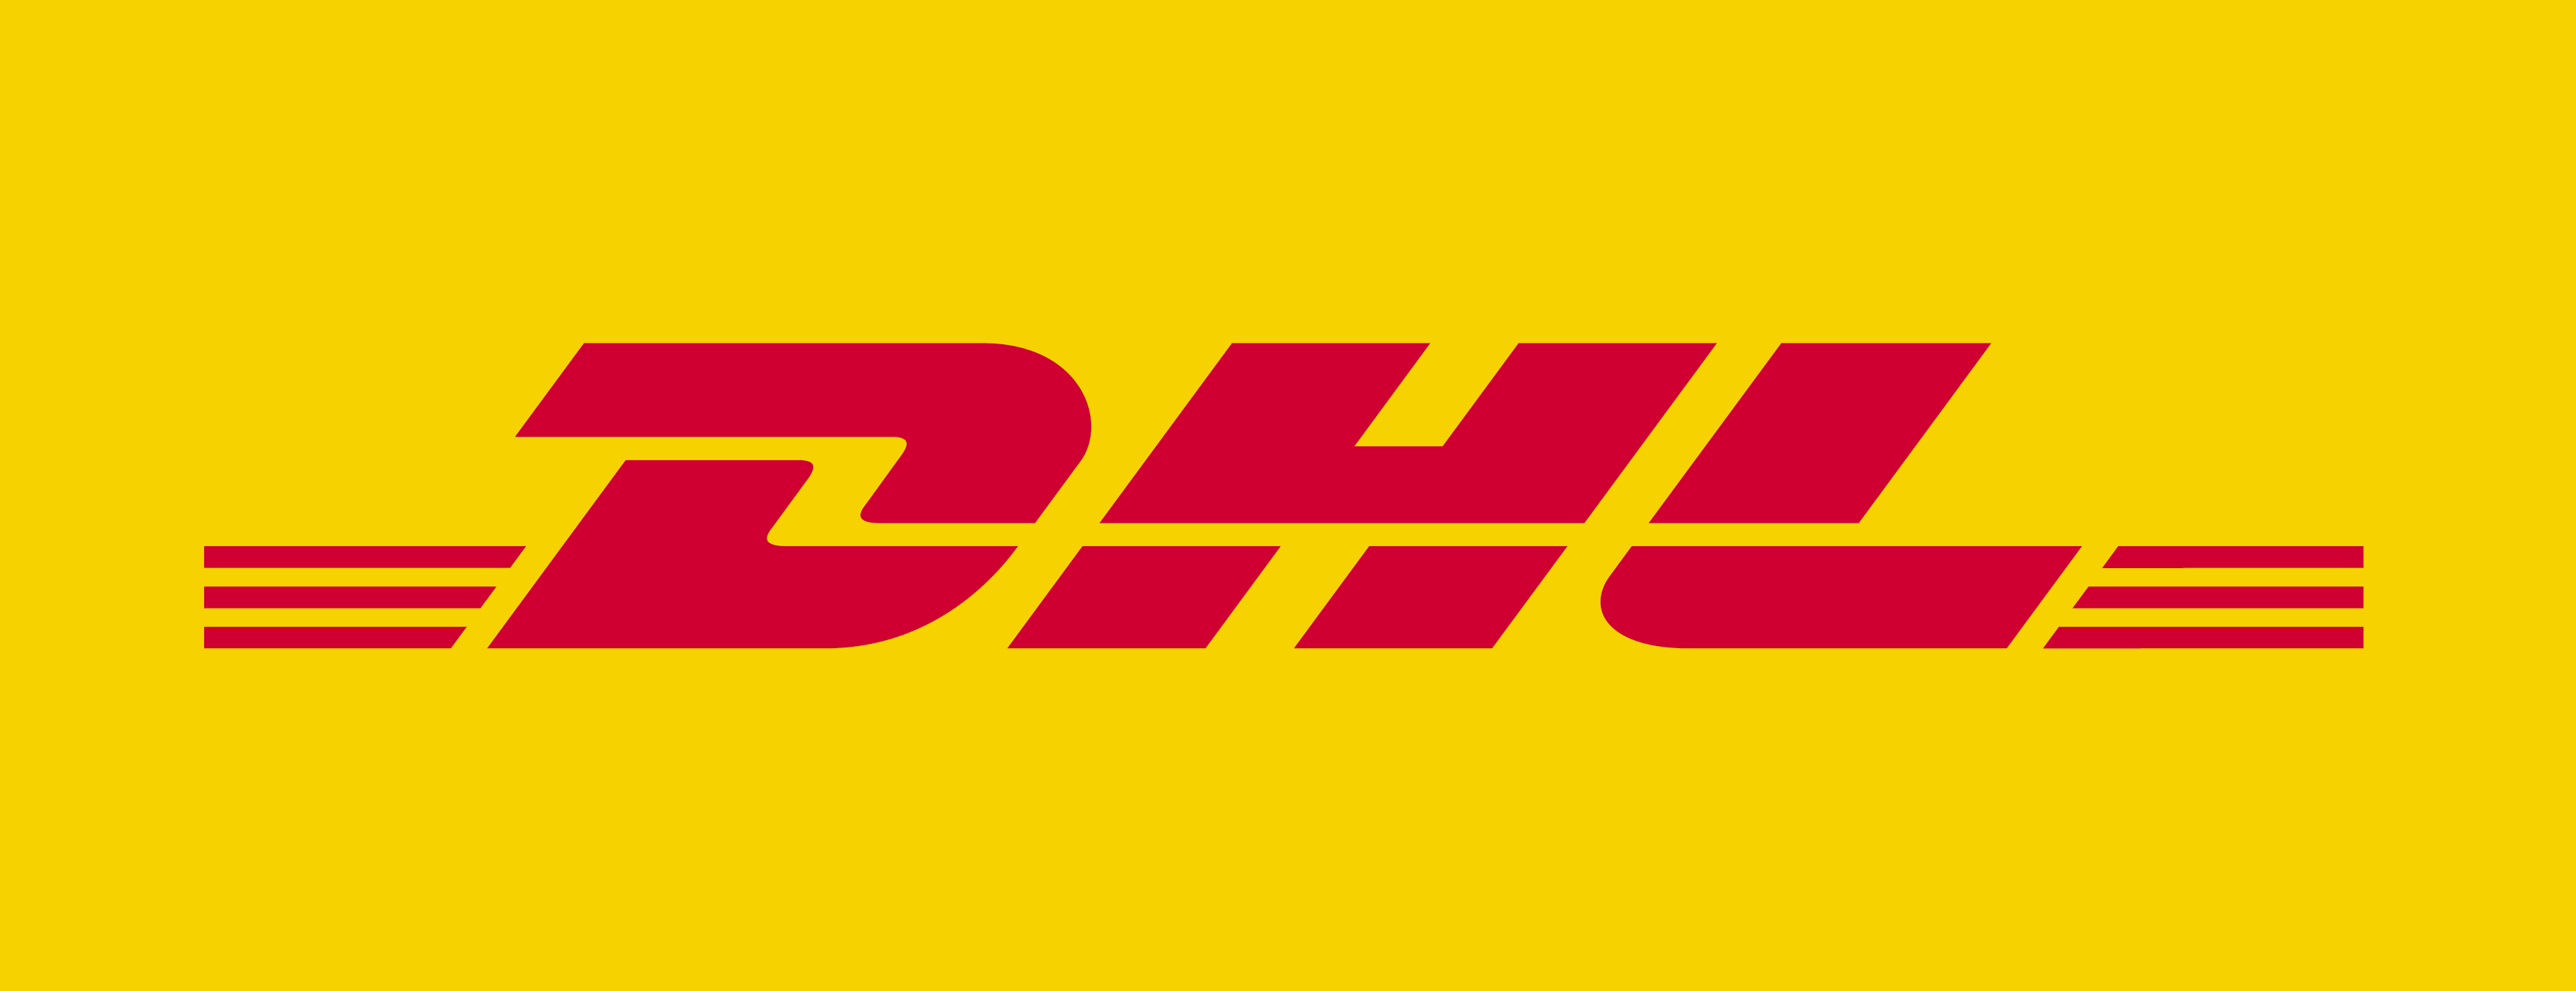 DHL Express tracking - track a parcel, track a package, track shipments and check shipment delivery status online. Track parcels and packages now.